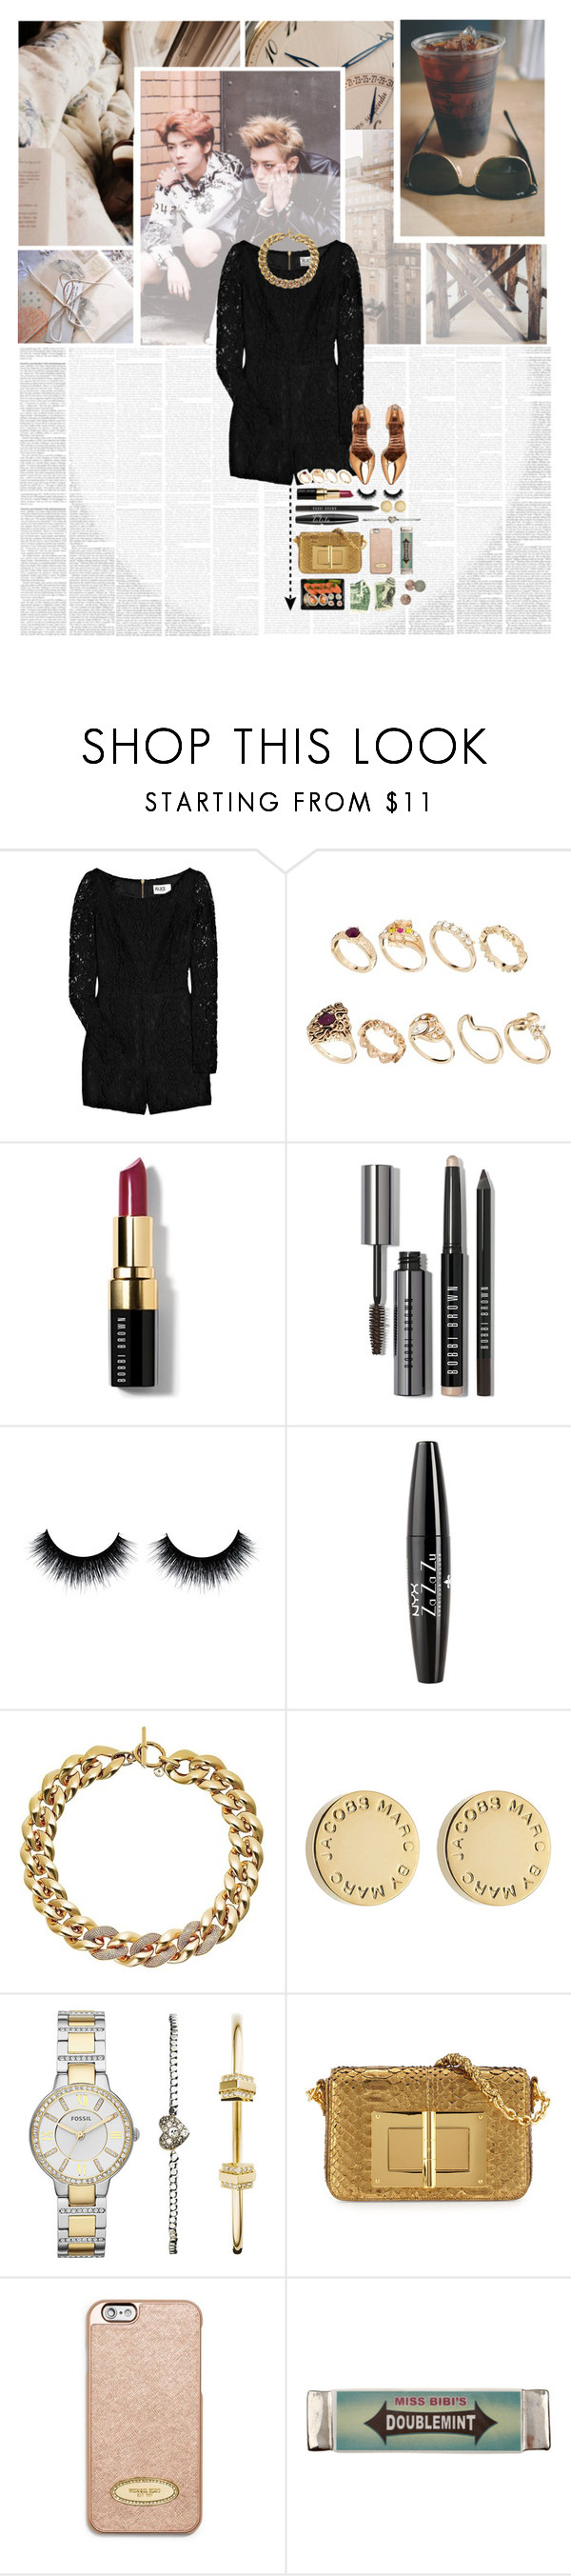 """The days are long but the years are short"" by glitterlovergurl ❤ liked on Polyvore featuring Misbehave, Alice by Temperley, ASOS, Bobbi Brown Cosmetics, NYX, Michael Kors, Marc by Marc Jacobs, FOSSIL, MICHAEL Michael Kors and Miss Bibi"